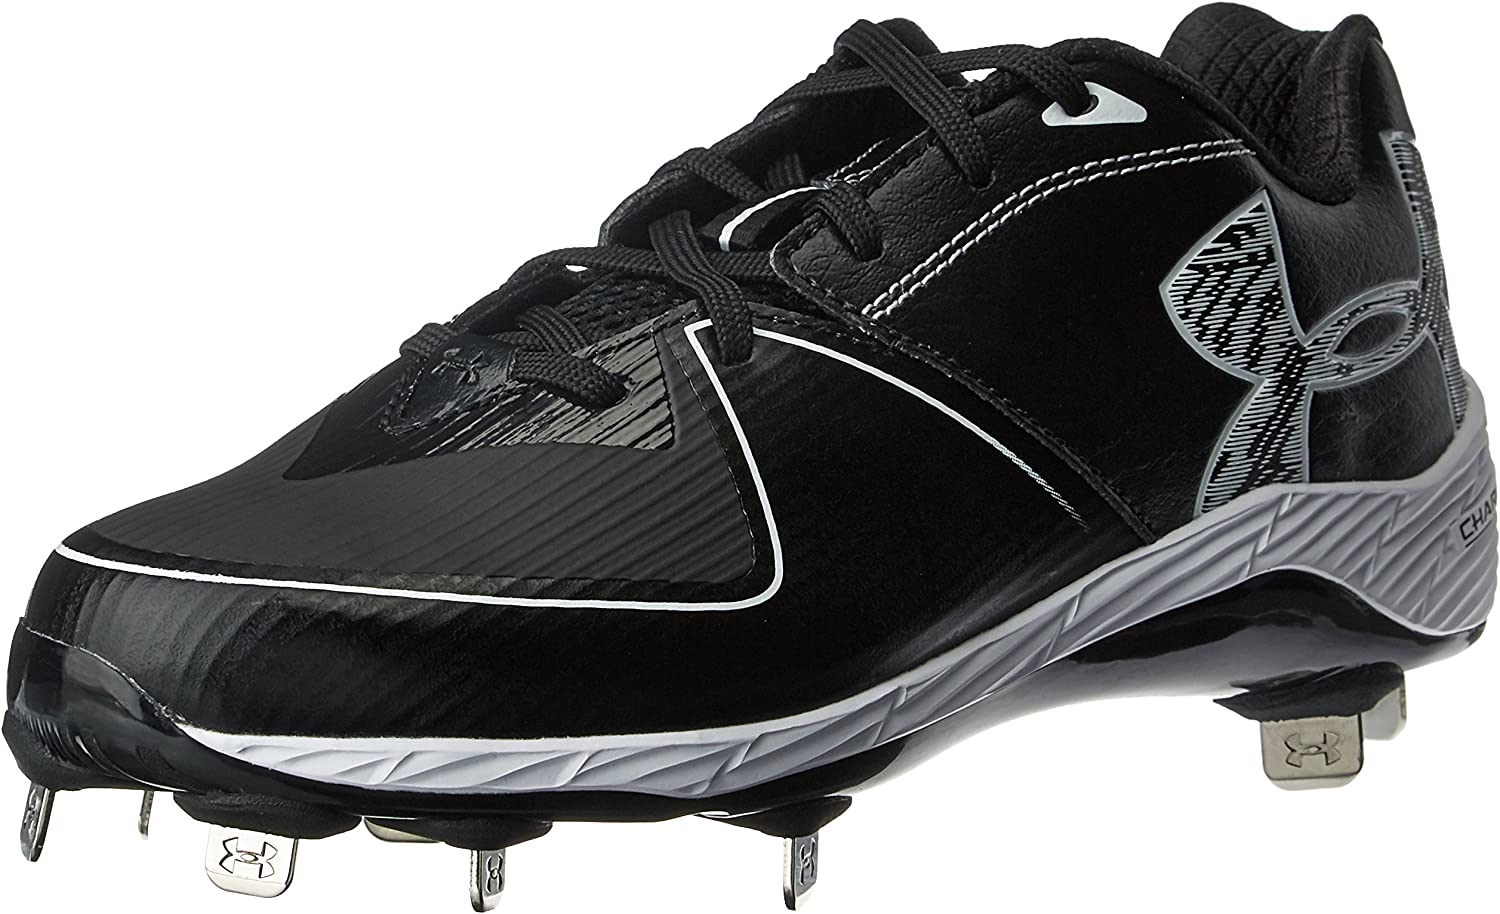 Under Bargain sale Armour Women's HOVR Sonic Shoe free shipping Softball